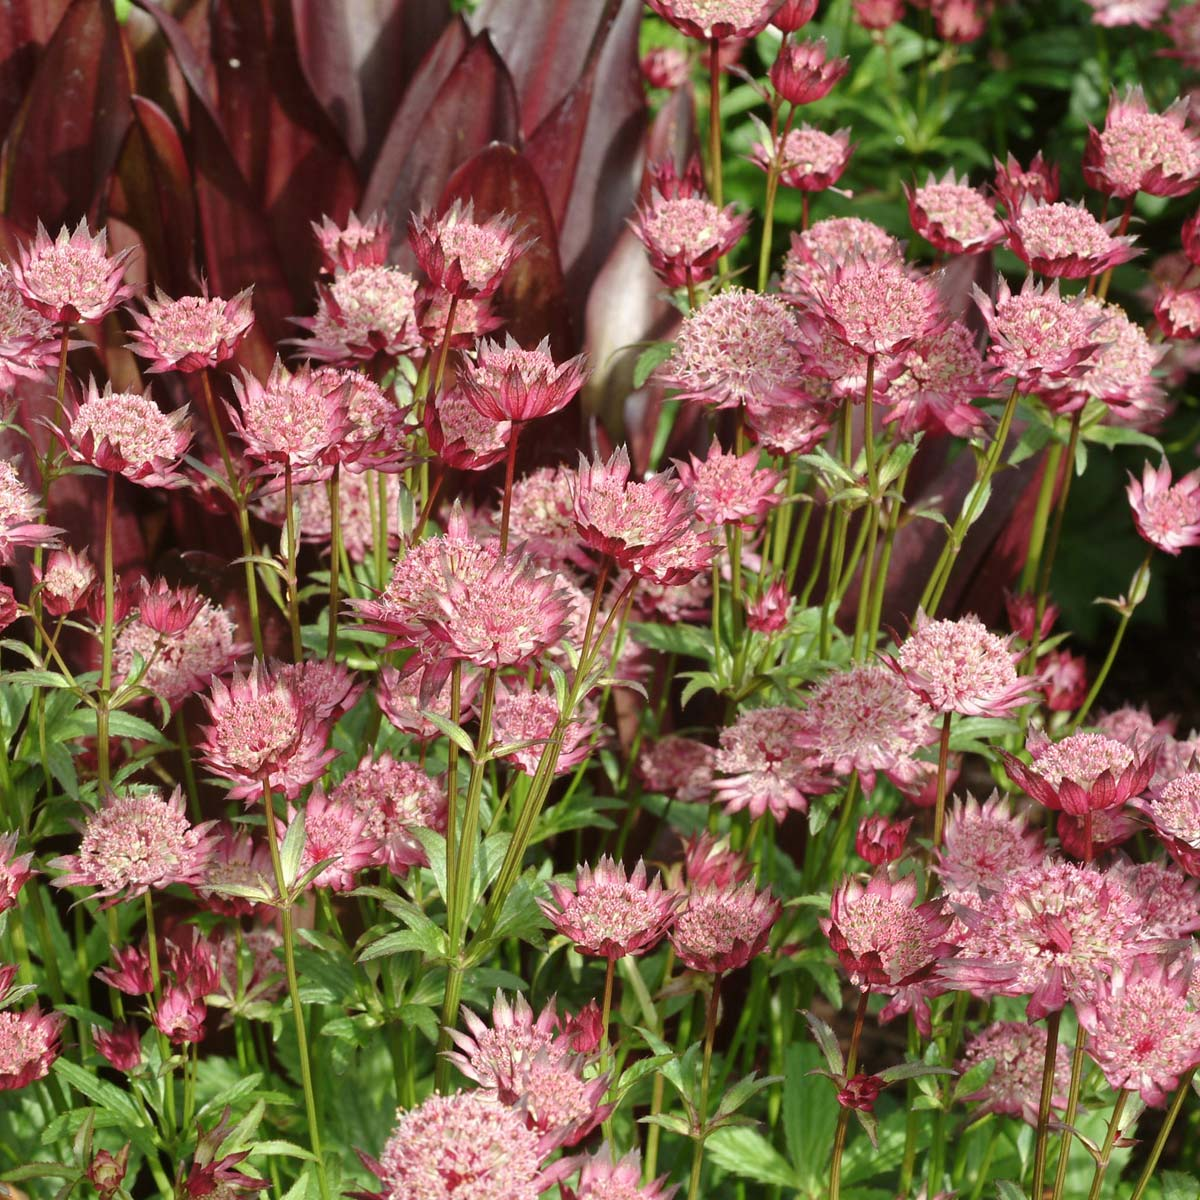 Astrantia 'Hadspen Blood'